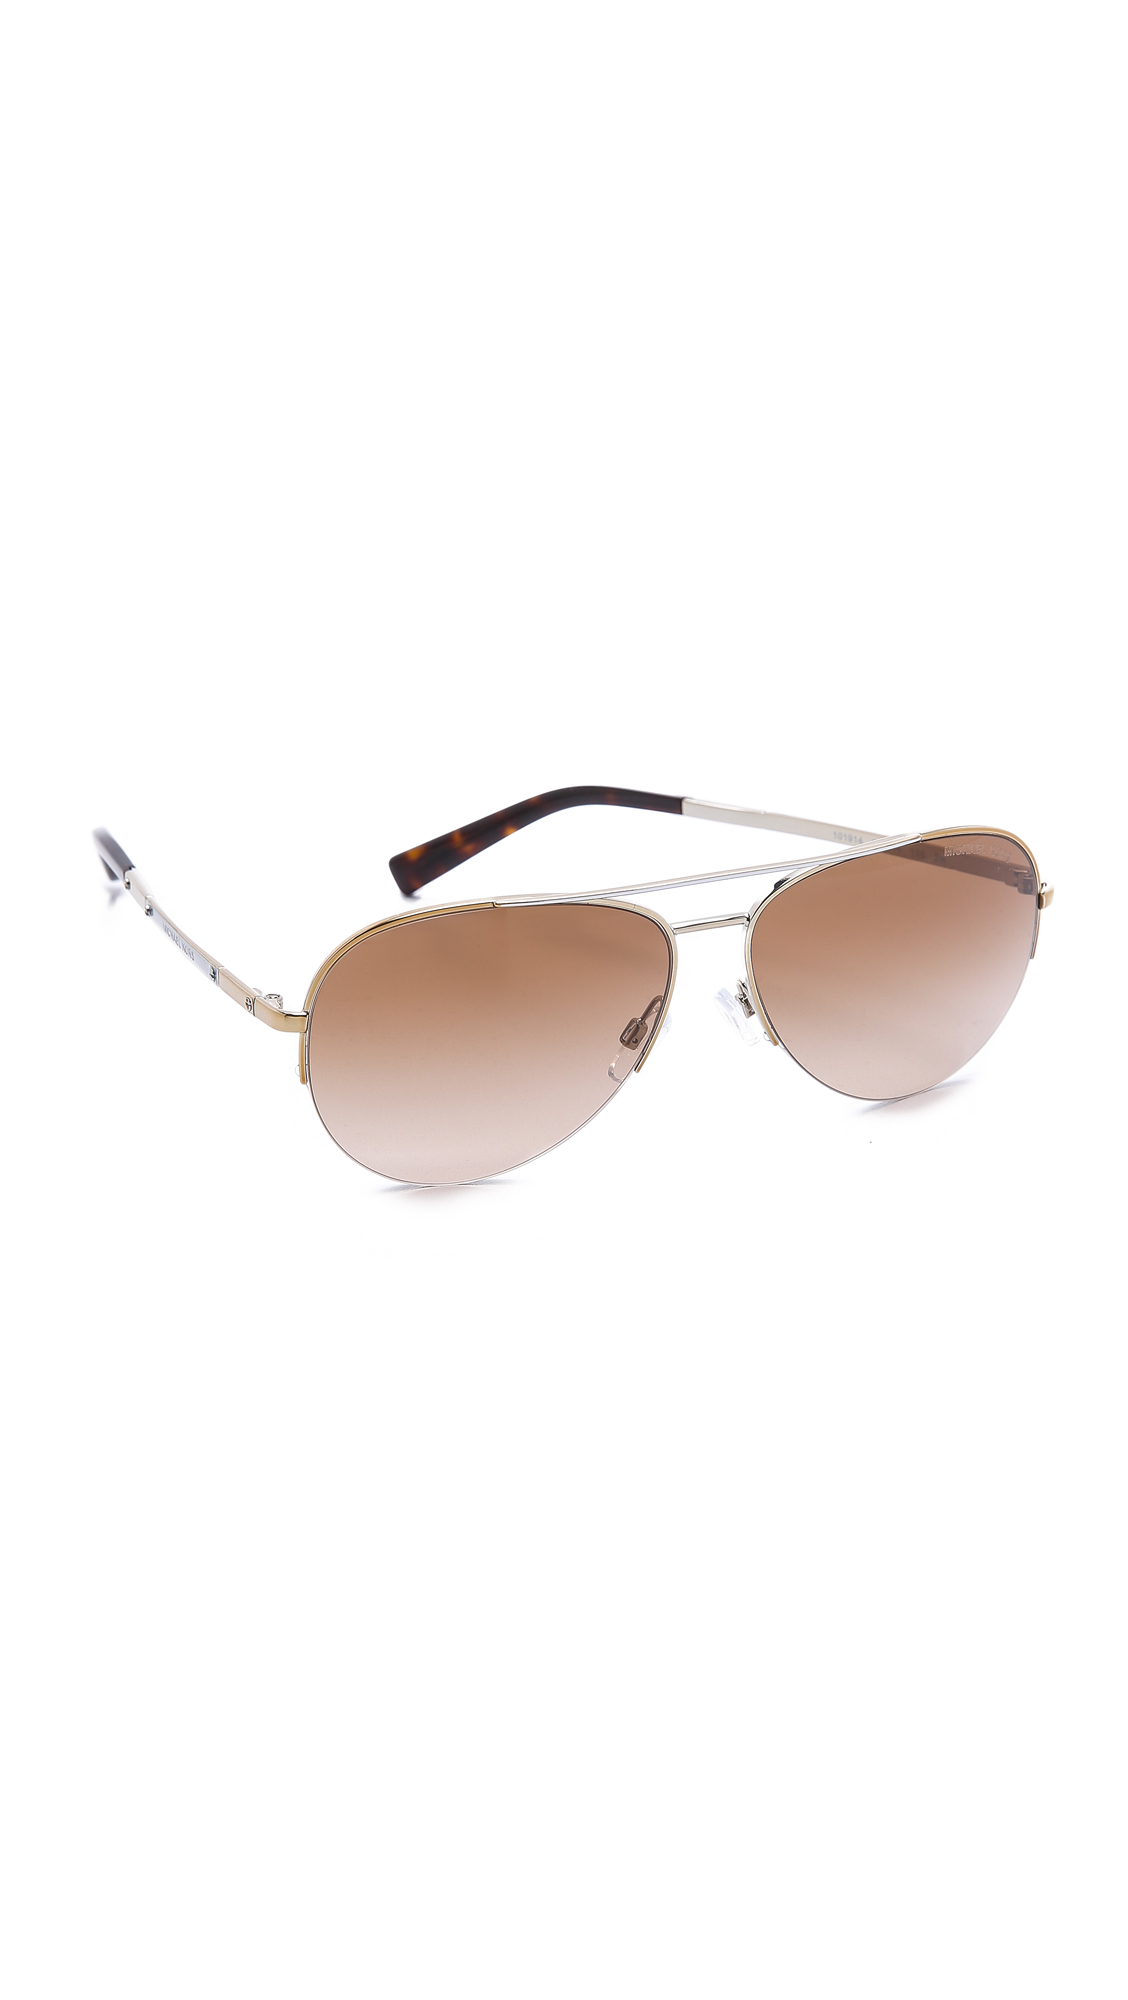 a1c1588d09c Lyst - Michael Kors Gramercy Sunglasses - Gold Rose Gold brown ...